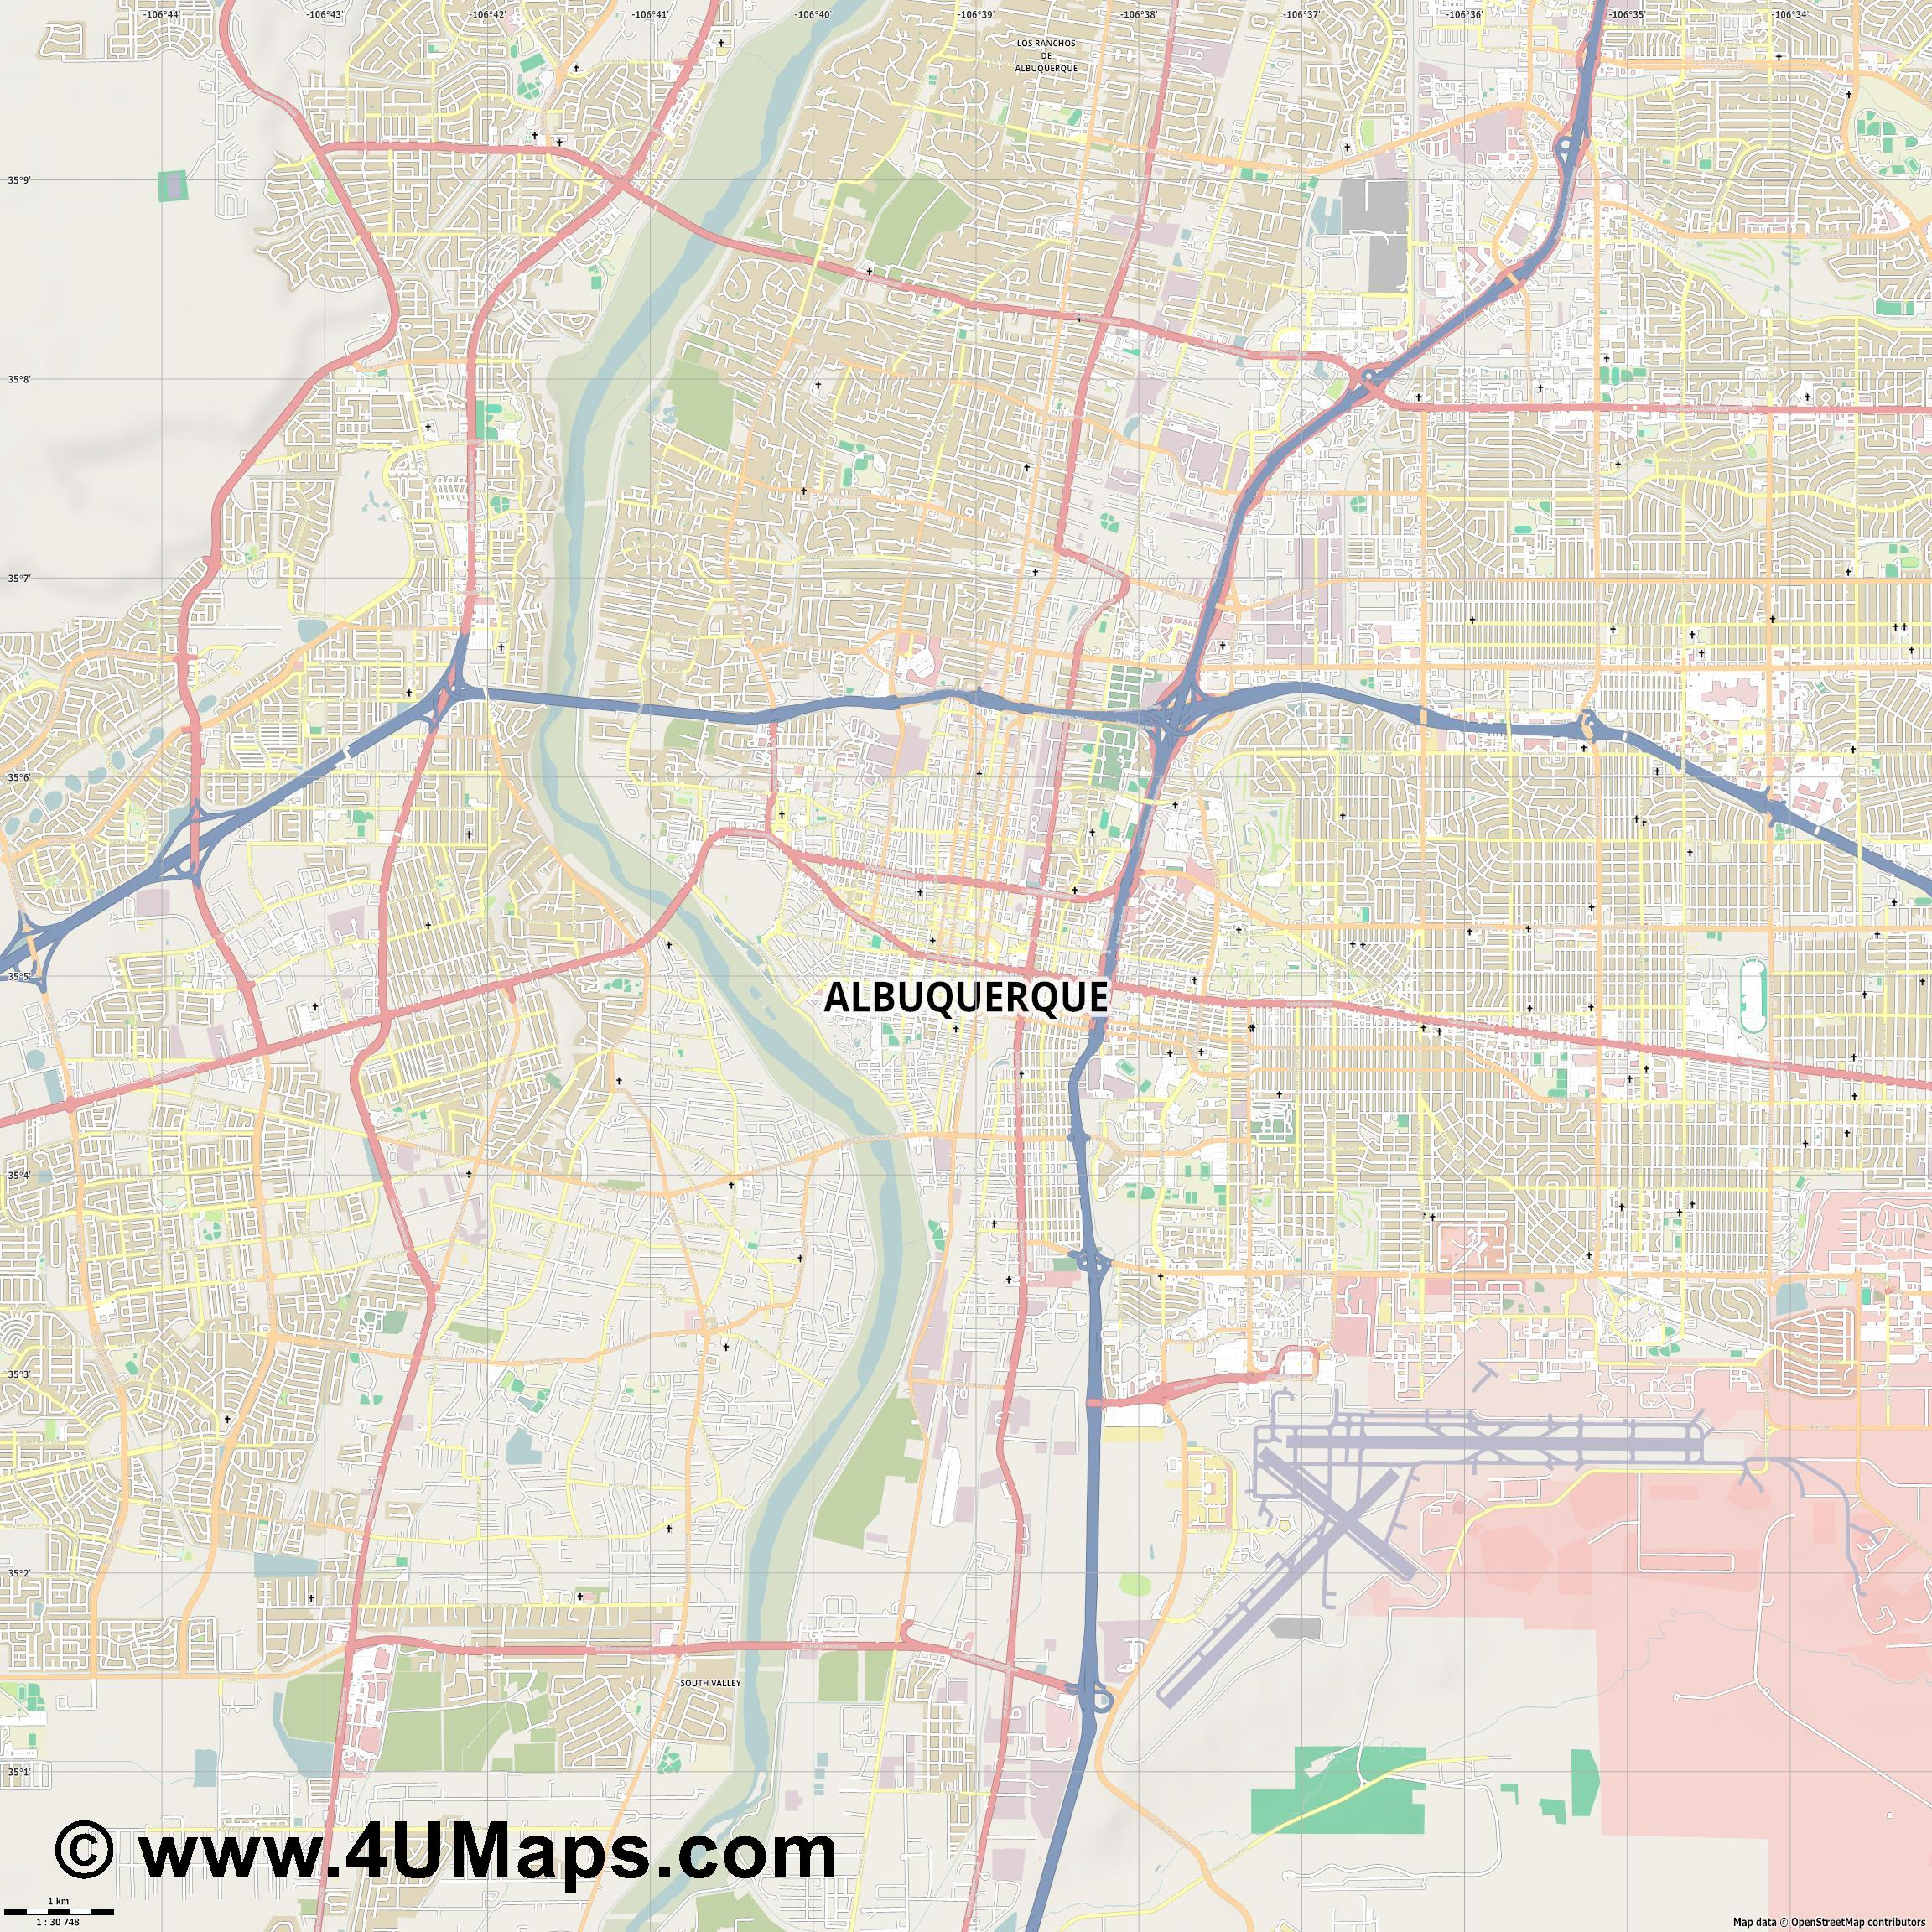 Albuquerque  jpg high detail, large area preview vector city map